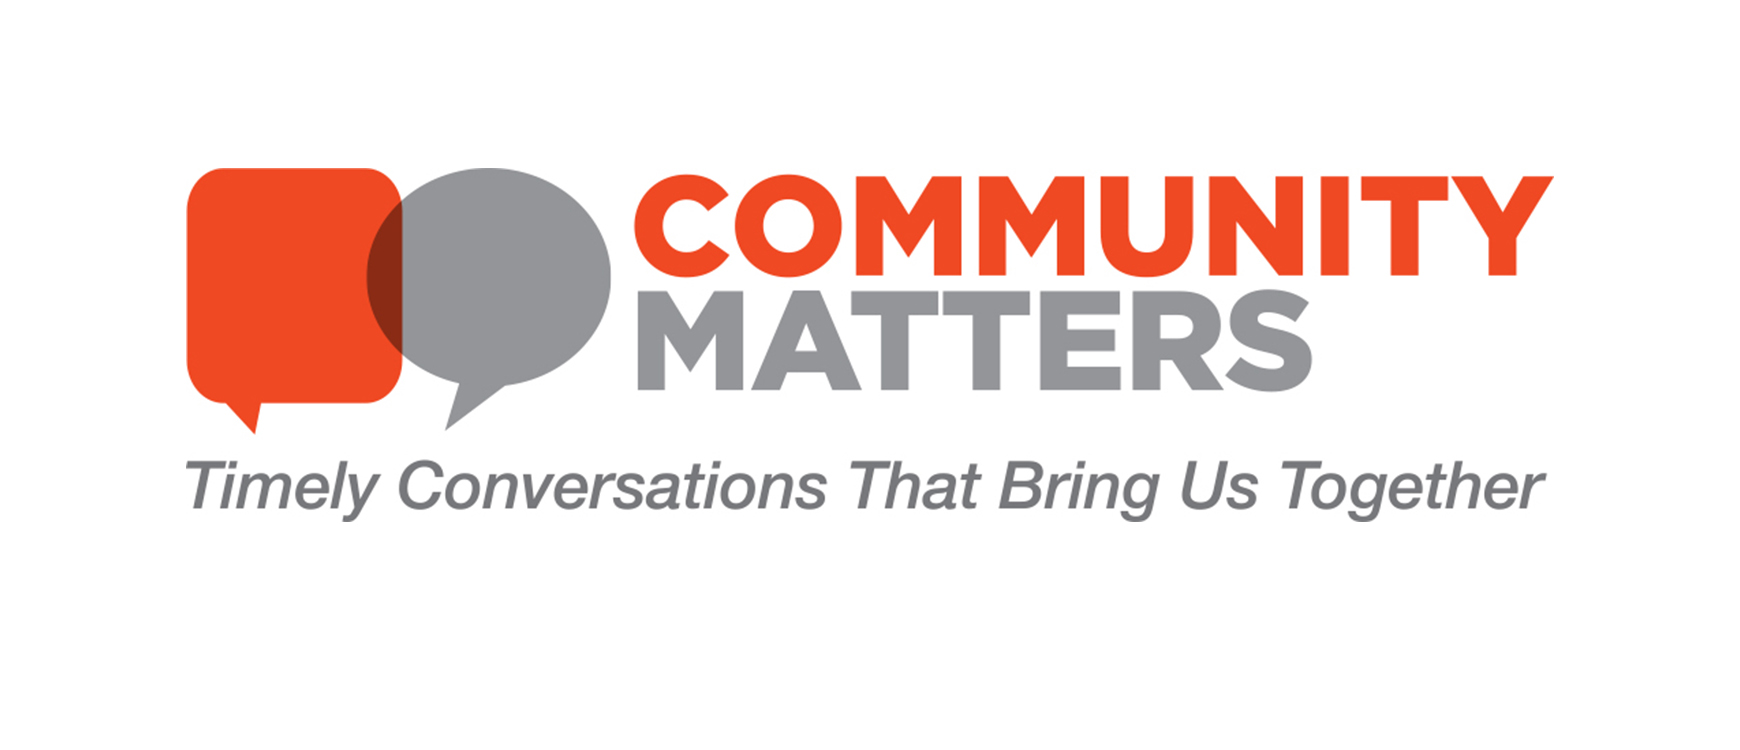 COMMUNITY MATTERS - Break the Silence: The Impact of Human Trafficking on Girls of Color